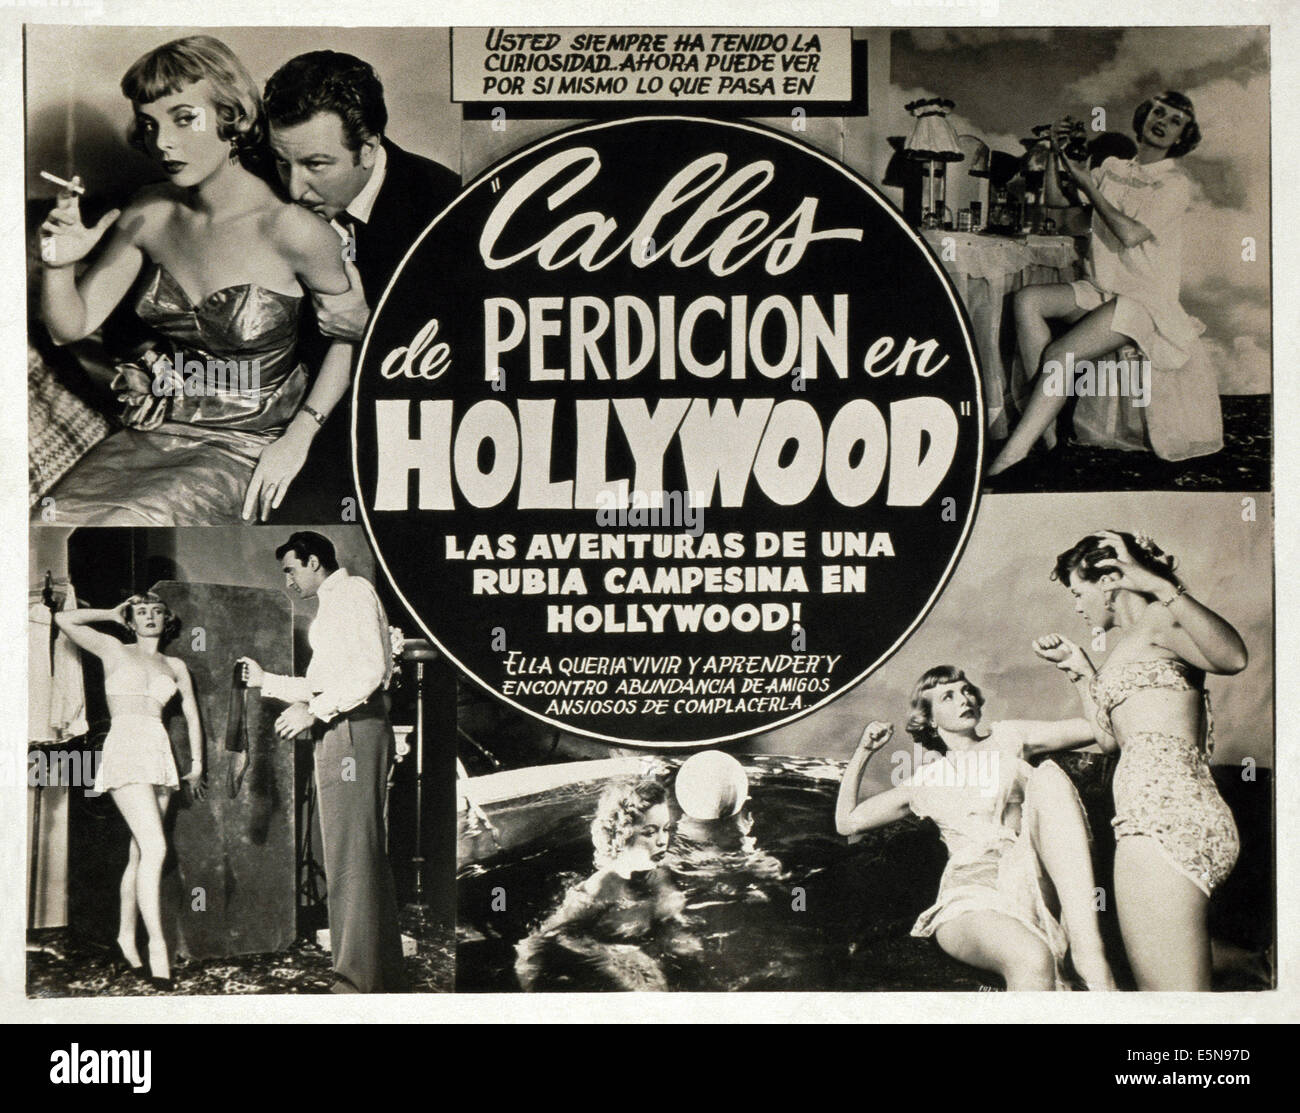 CALLES DE PERDICION EN HOLLYWOOD, (aka Strassen der Sünde IN HOLLYWOOD), ca. 1950er Jahre Stockbild